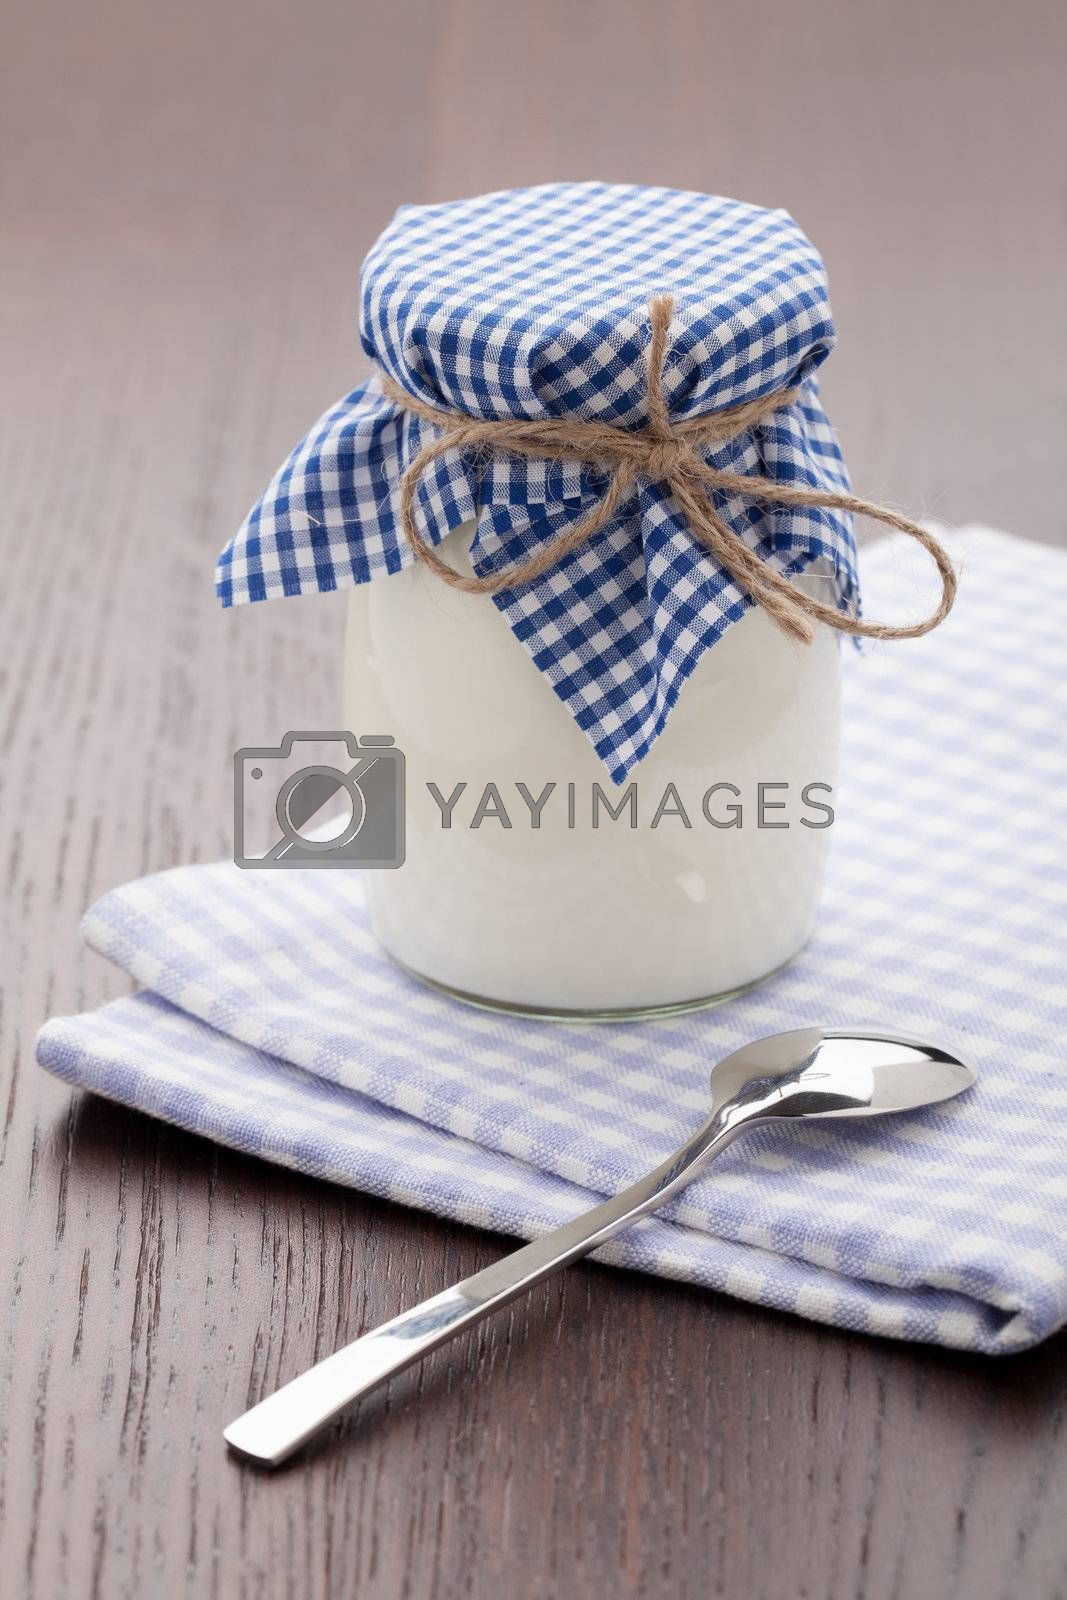 Homemade milk yogurt in glass pot and metal spoon served on linen napkin wooden table